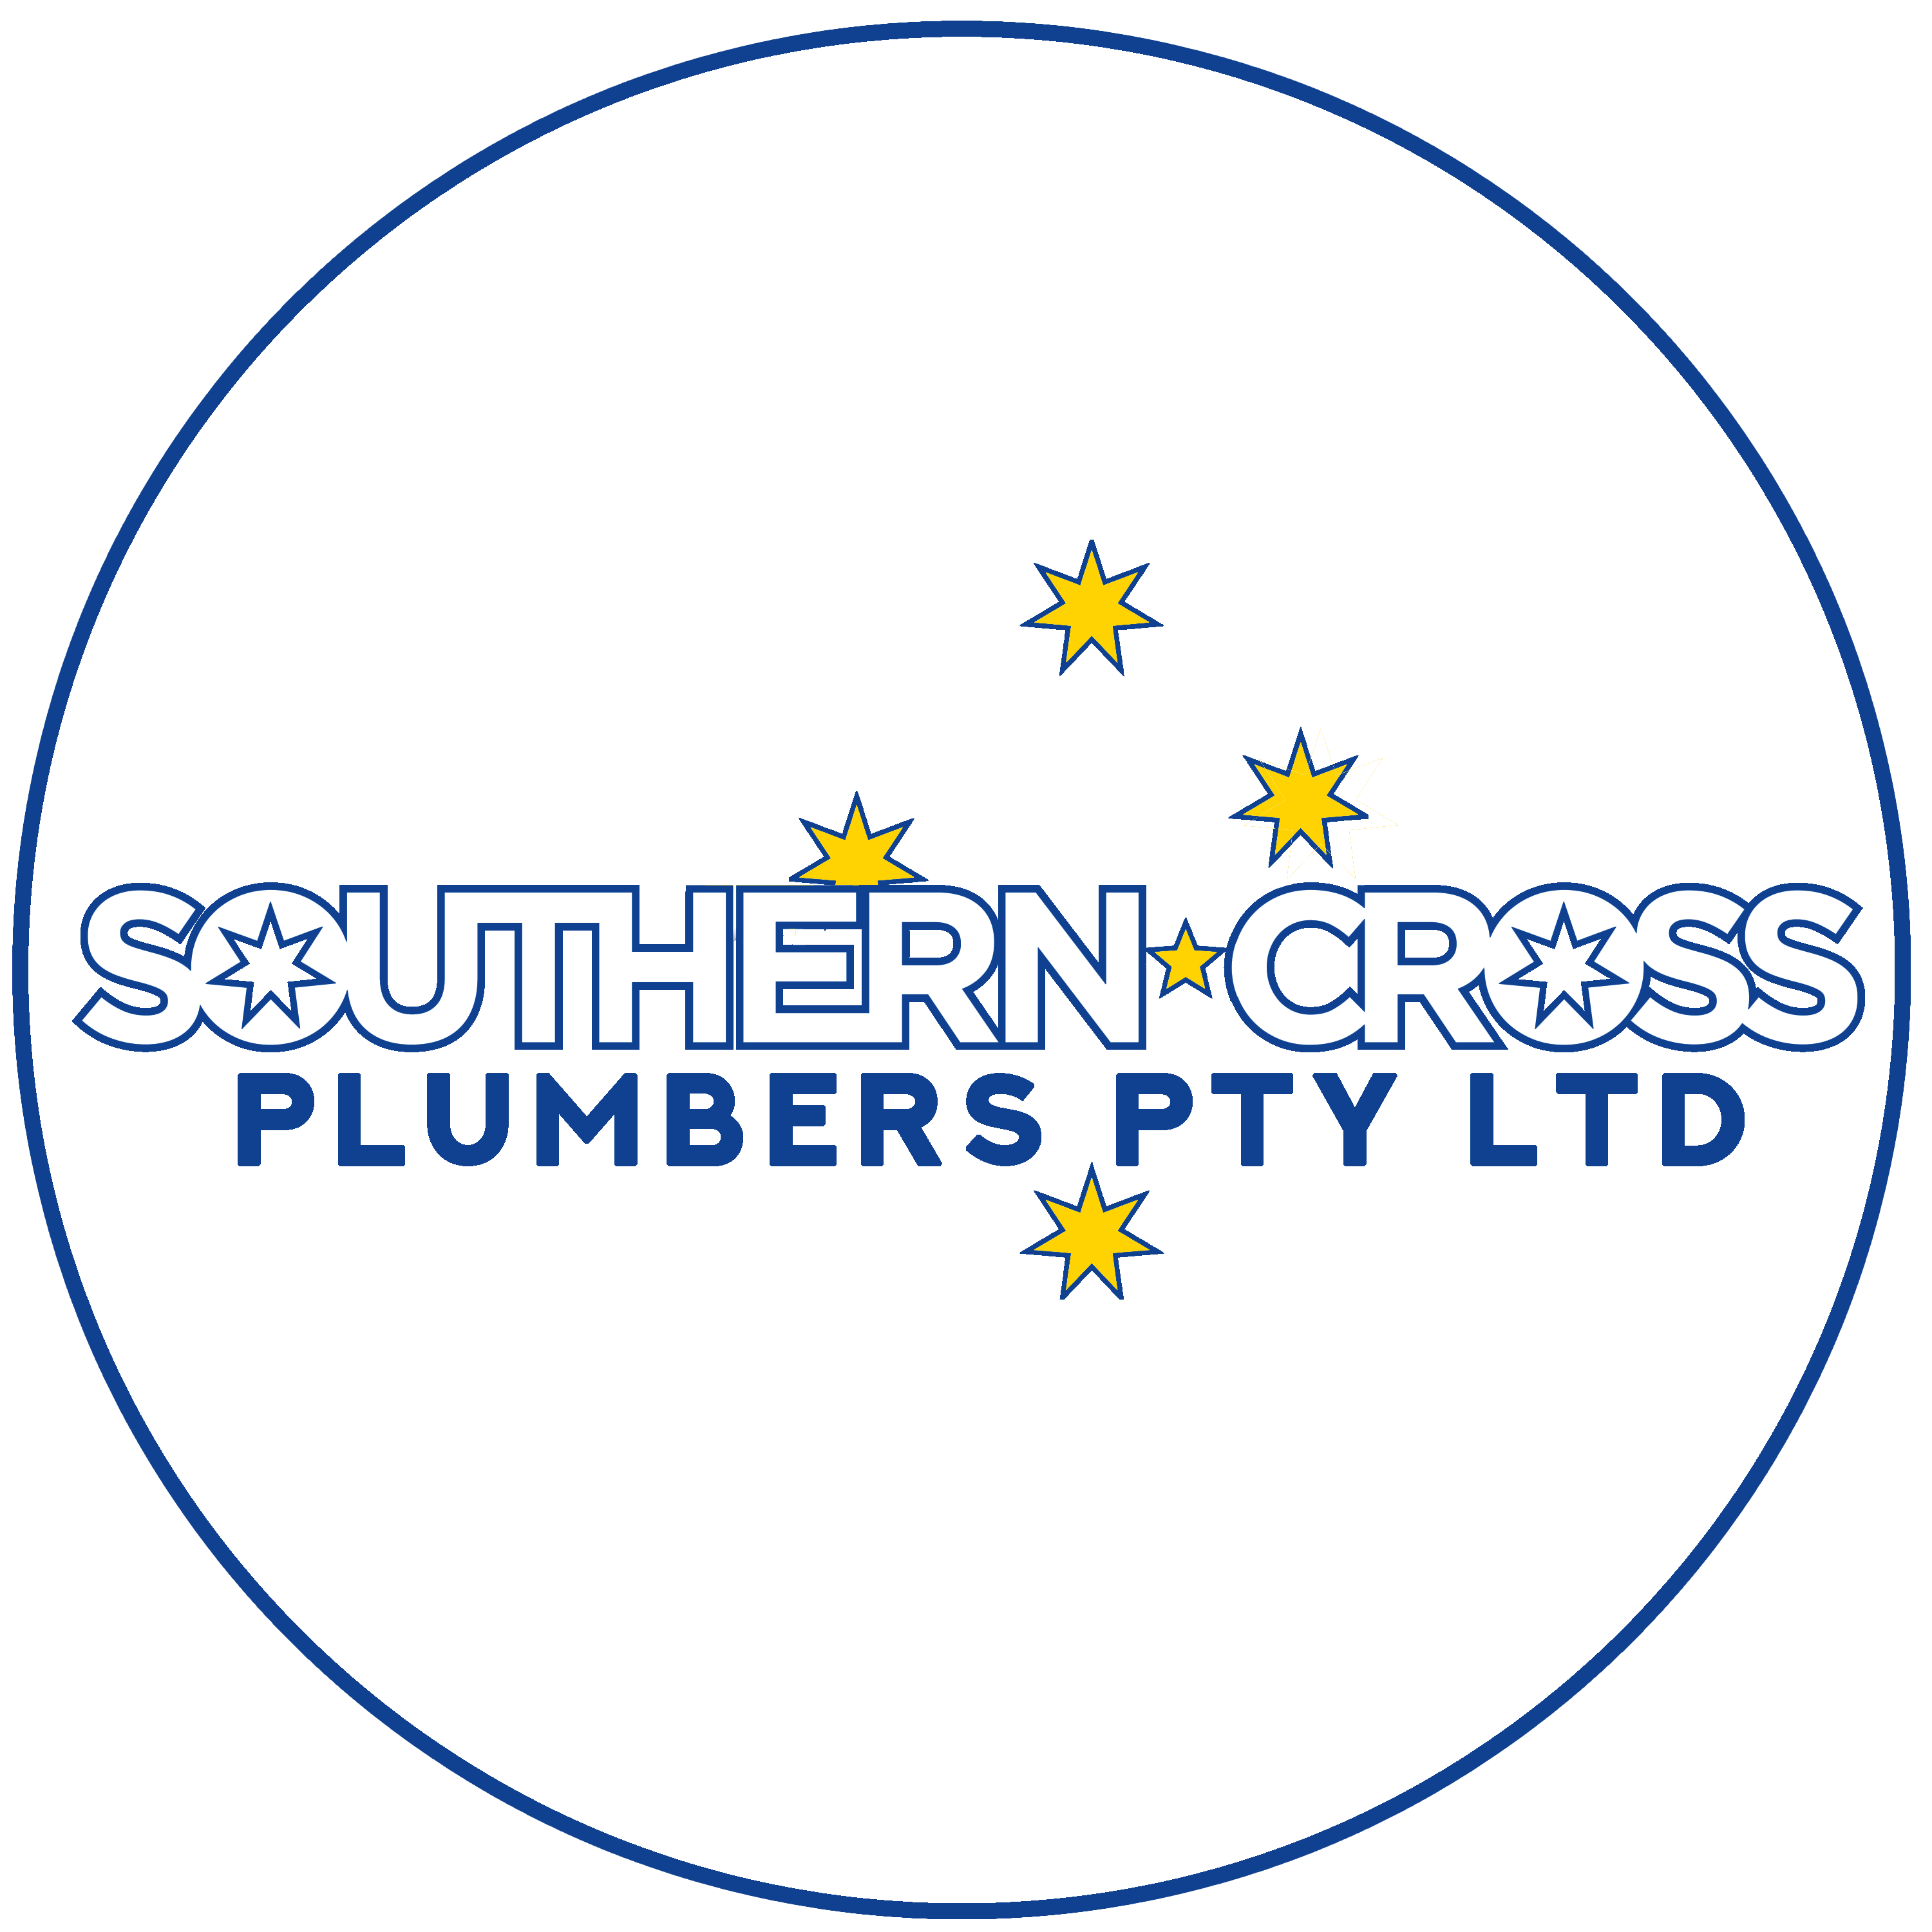 Southern Cross Plumbers Pty Ltd - West Gosford, NSW 2250 - (02) 4328 2253 | ShowMeLocal.com